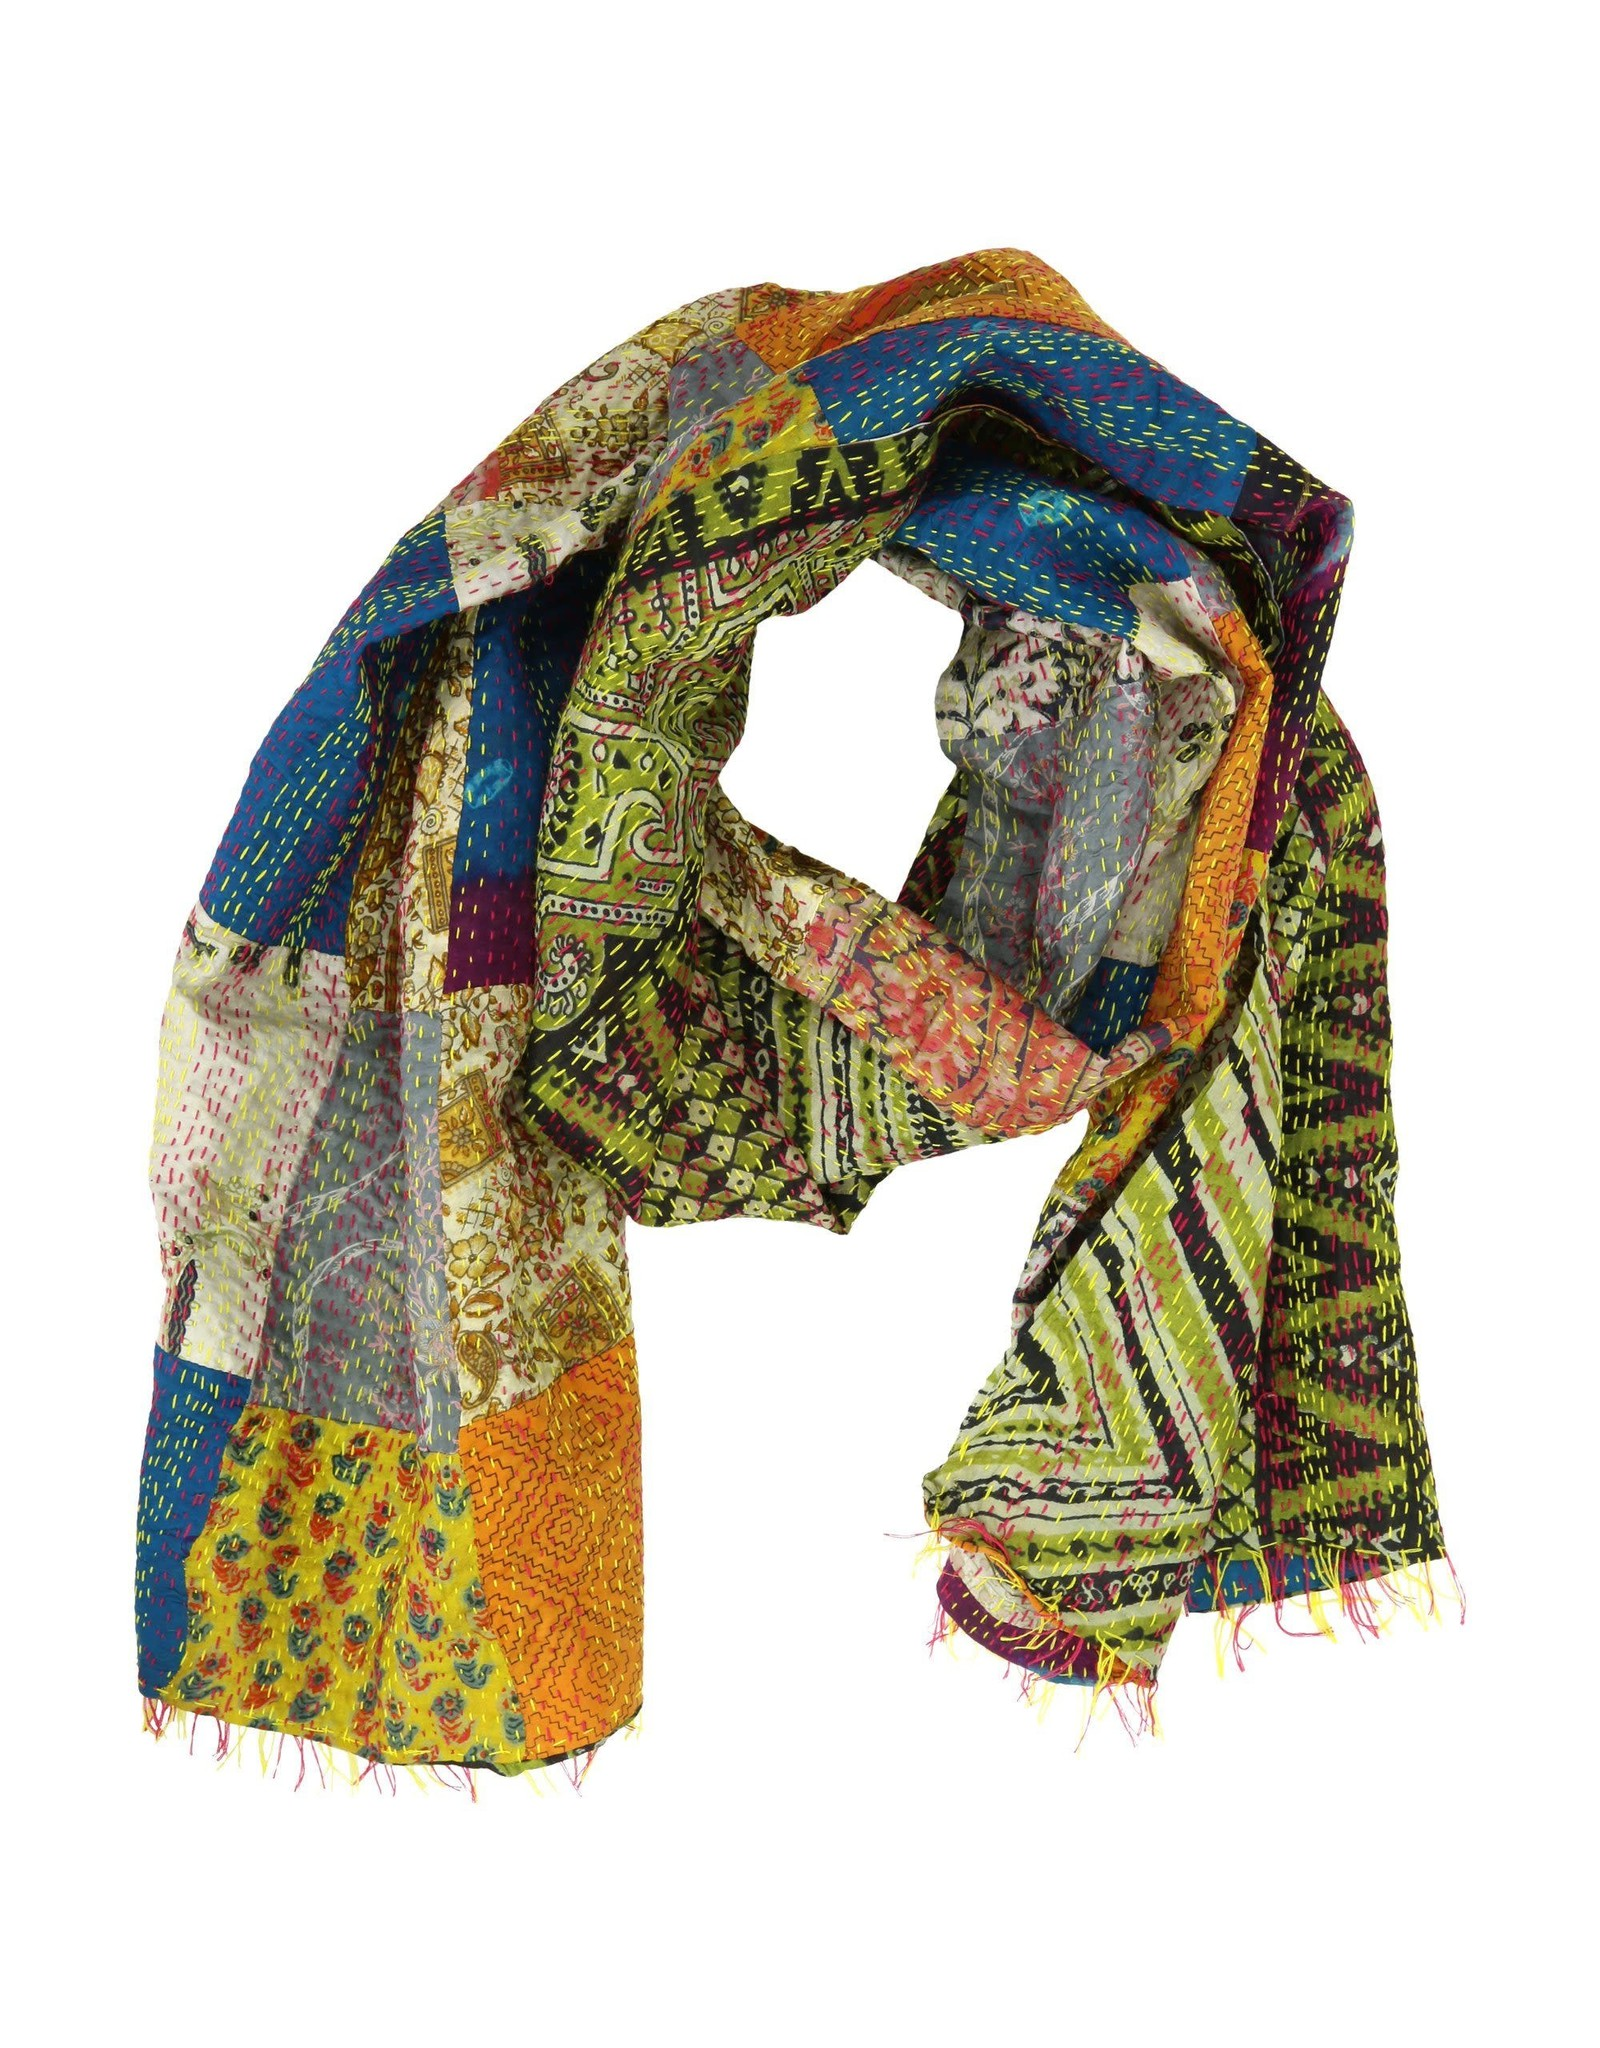 Heirloom Silk Sari Scarf, India